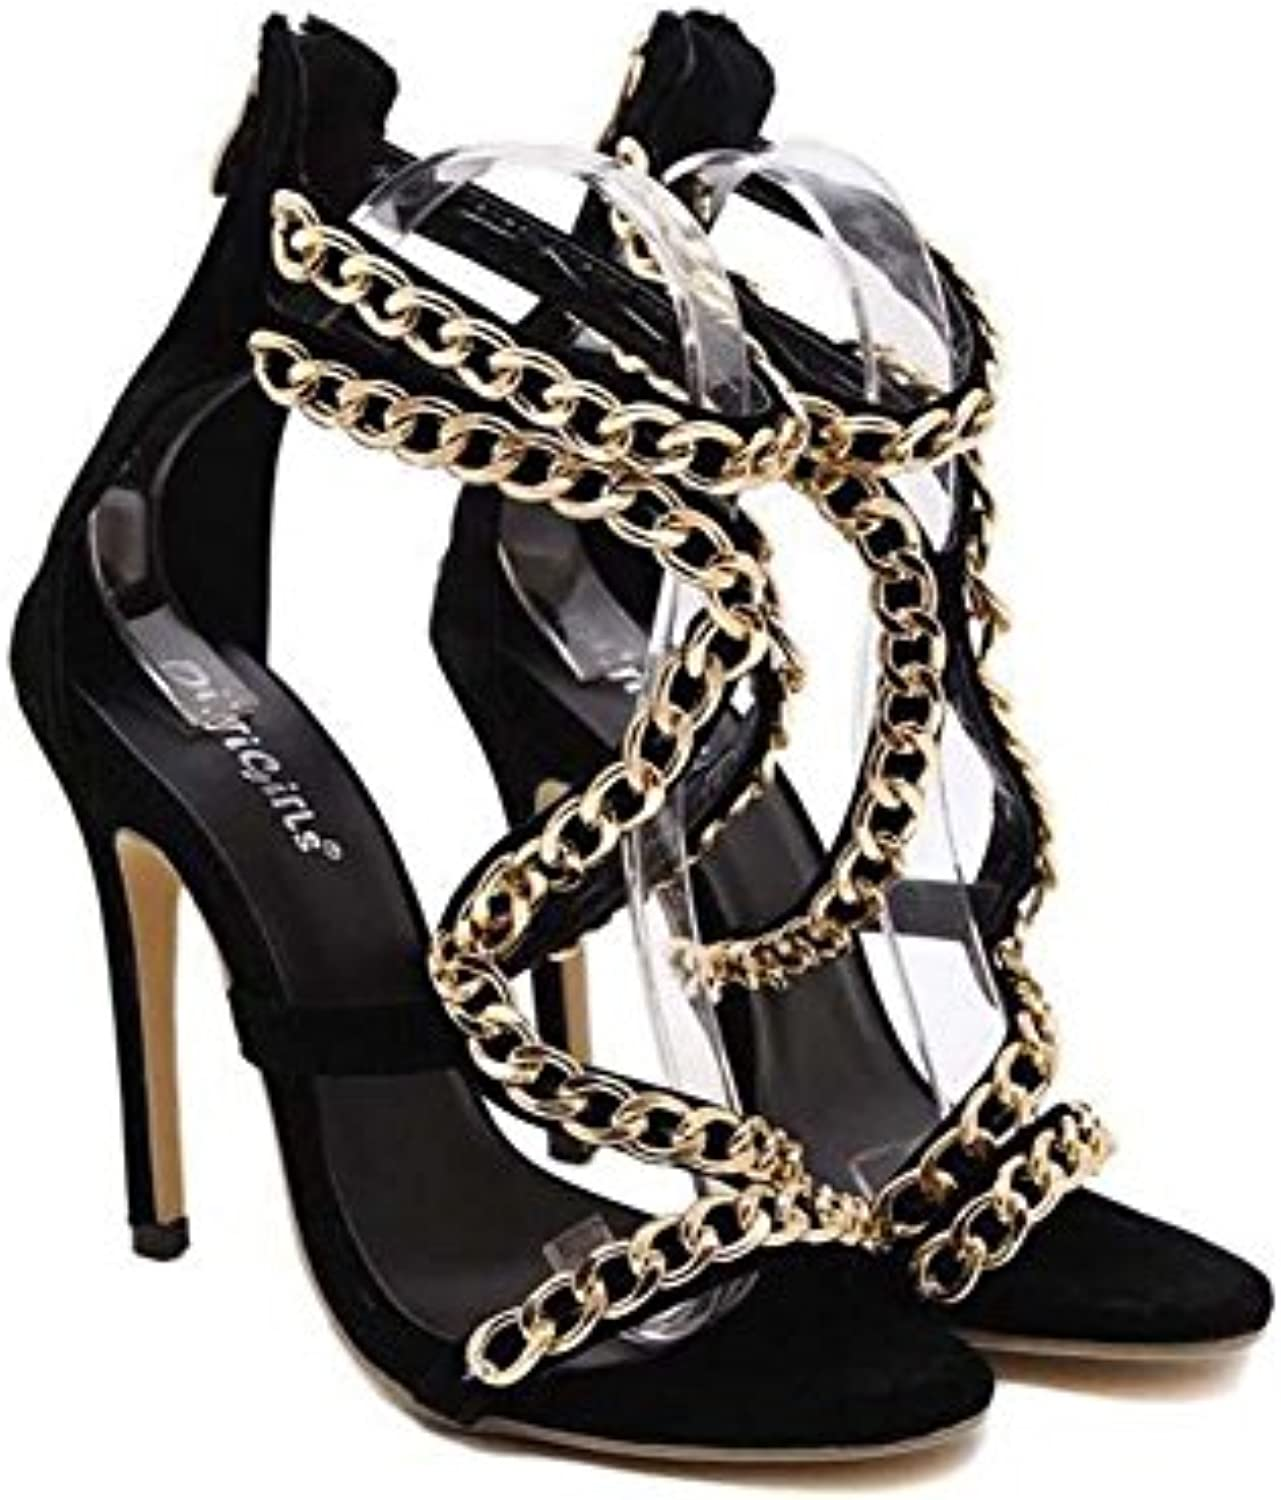 e3f7900152e1 Pump 12cm 12cm 12cm Stiletto Scarpin High-Heeled Hollow Metal Chain  Decoration Sandals Dress Shoes Court Shoes Women Simple... B071S6GX14  Parent 587c37